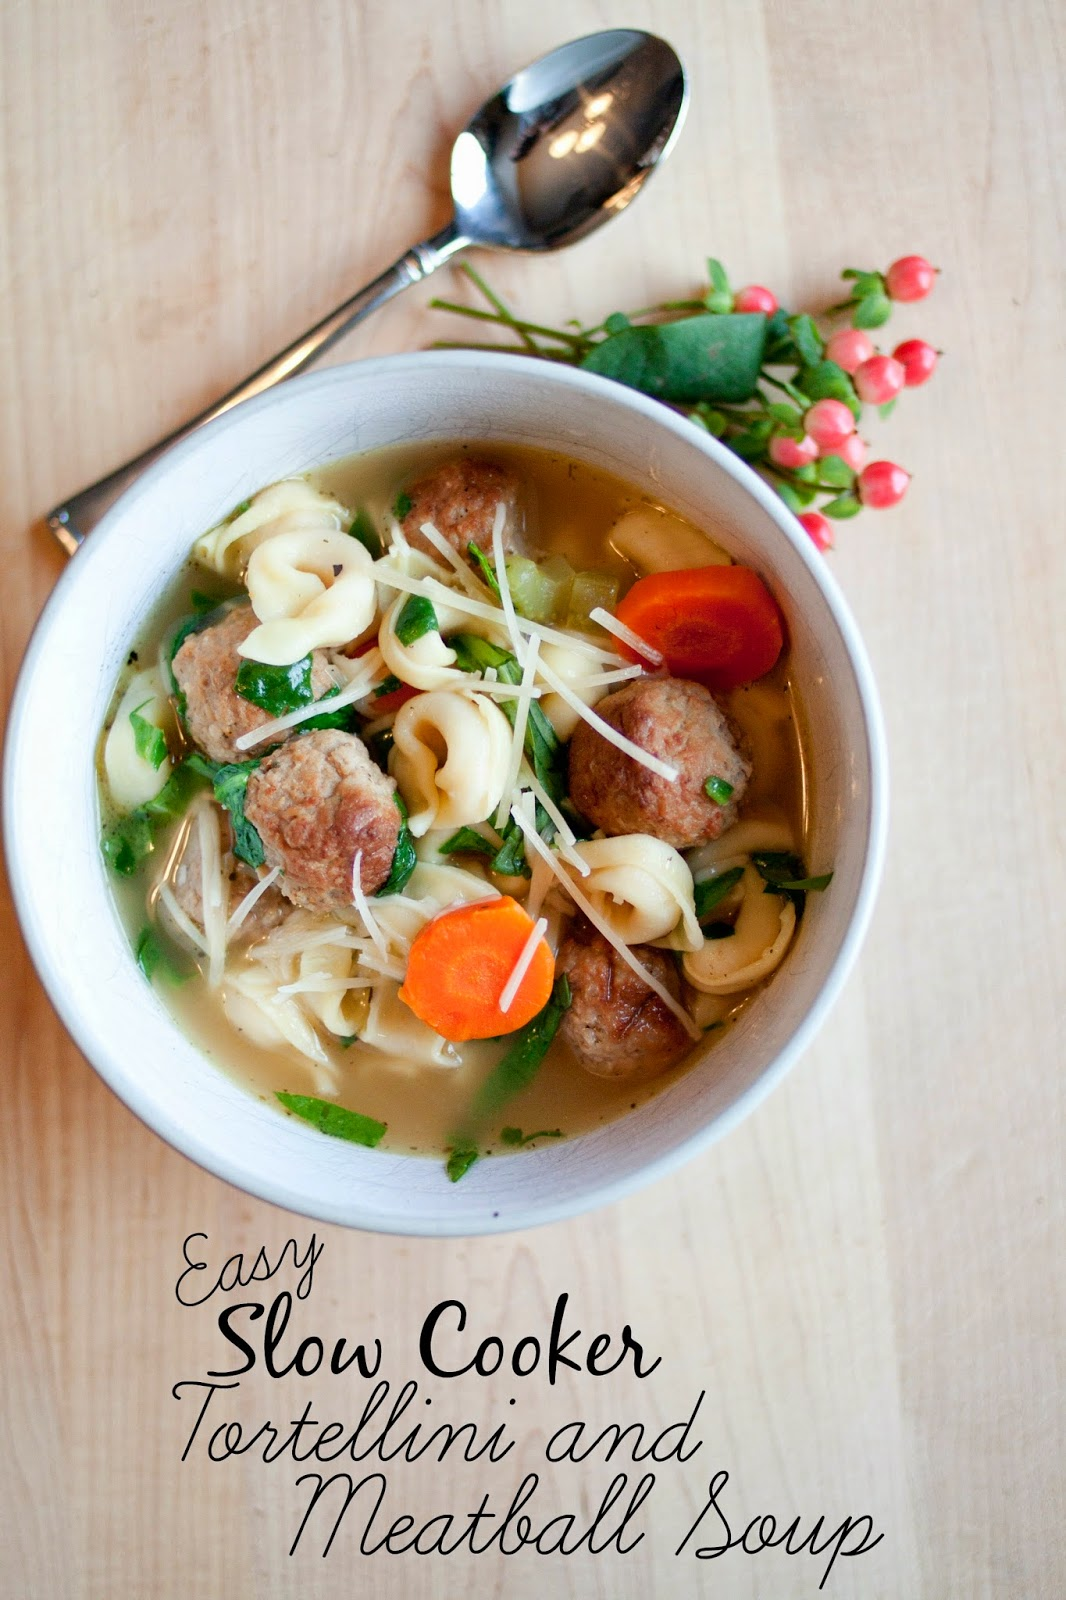 ILYMTC PR and Reviews: Easy Slow Cooker Tortellini and Meatball Soup